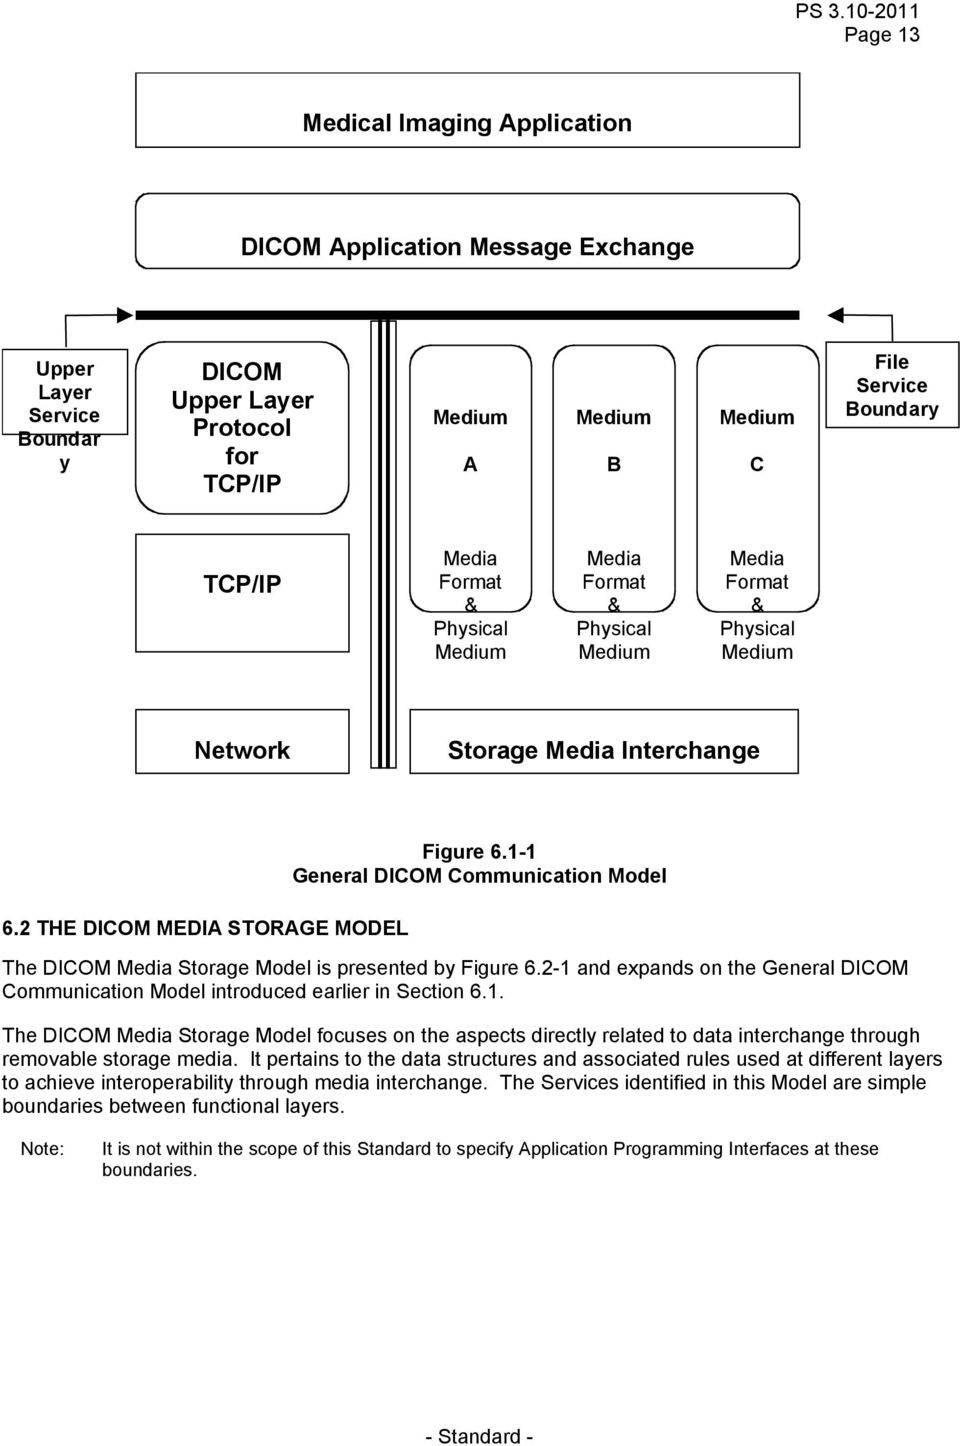 1-1 General DICOM Communication Model The DICOM Media Storage Model is presented by Figure 6.2-1 and expands on the General DICOM Communication Model introduced earlier in Section 6.1. The DICOM Media Storage Model focuses on the aspects directly related to data interchange through removable storage media.